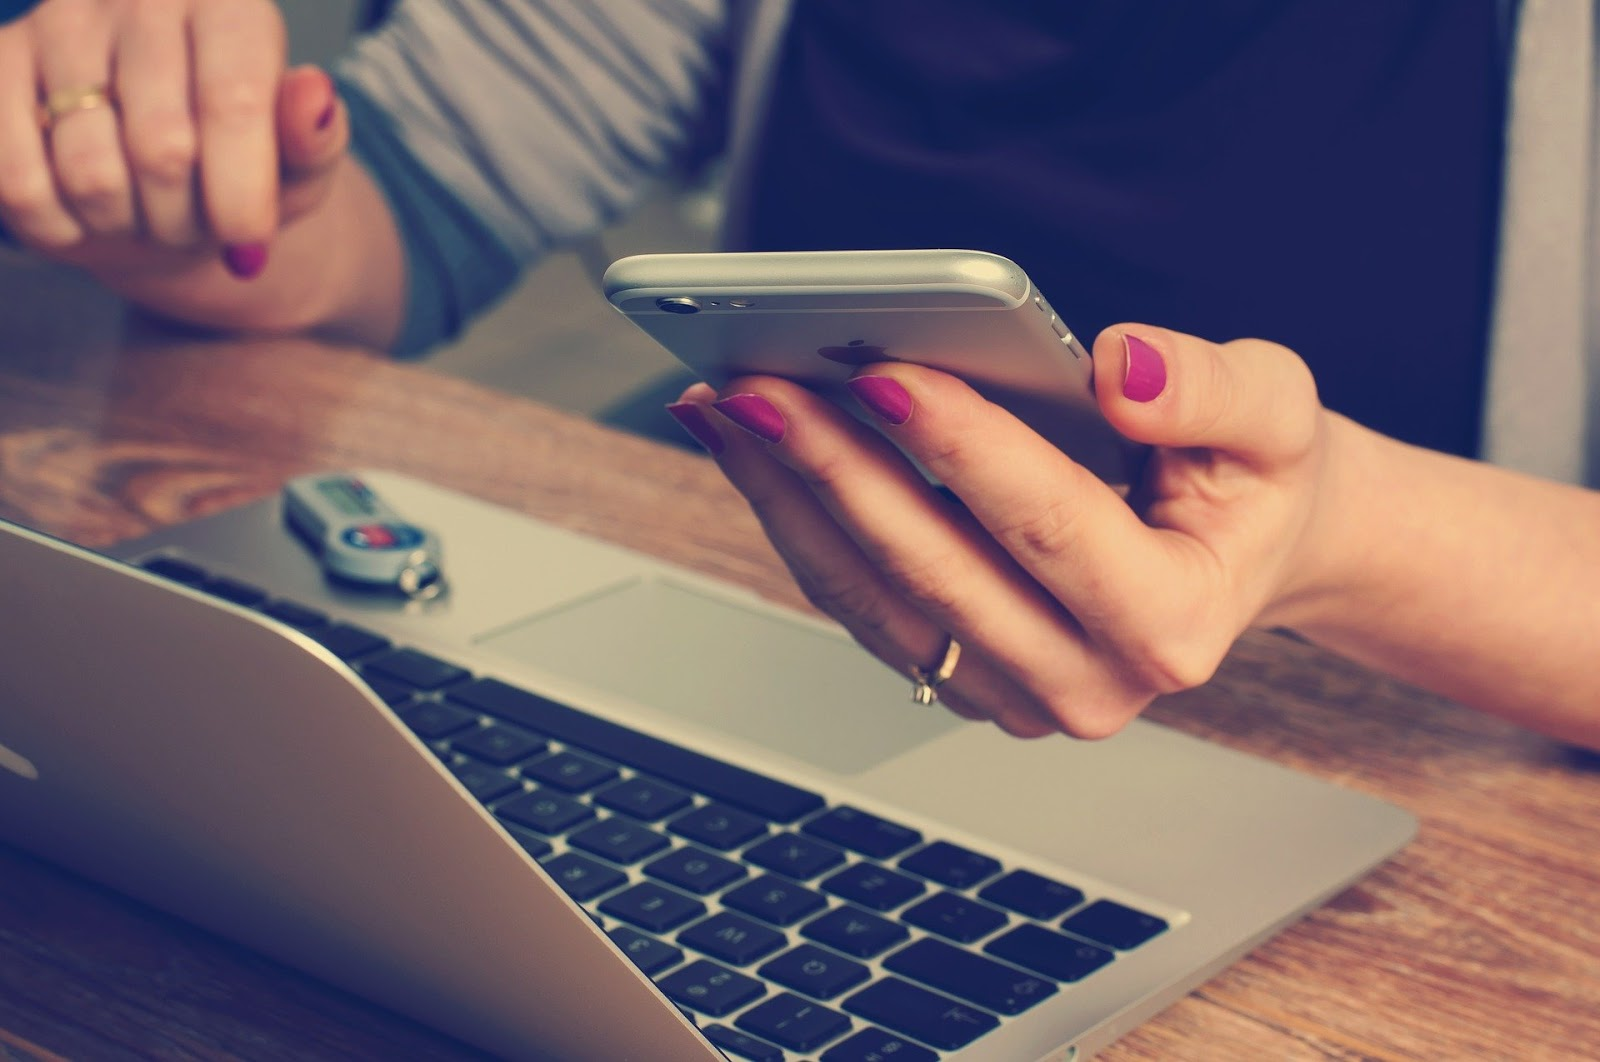 ways to increase your CTR on search engines - image of a woman operating her laptop and phone